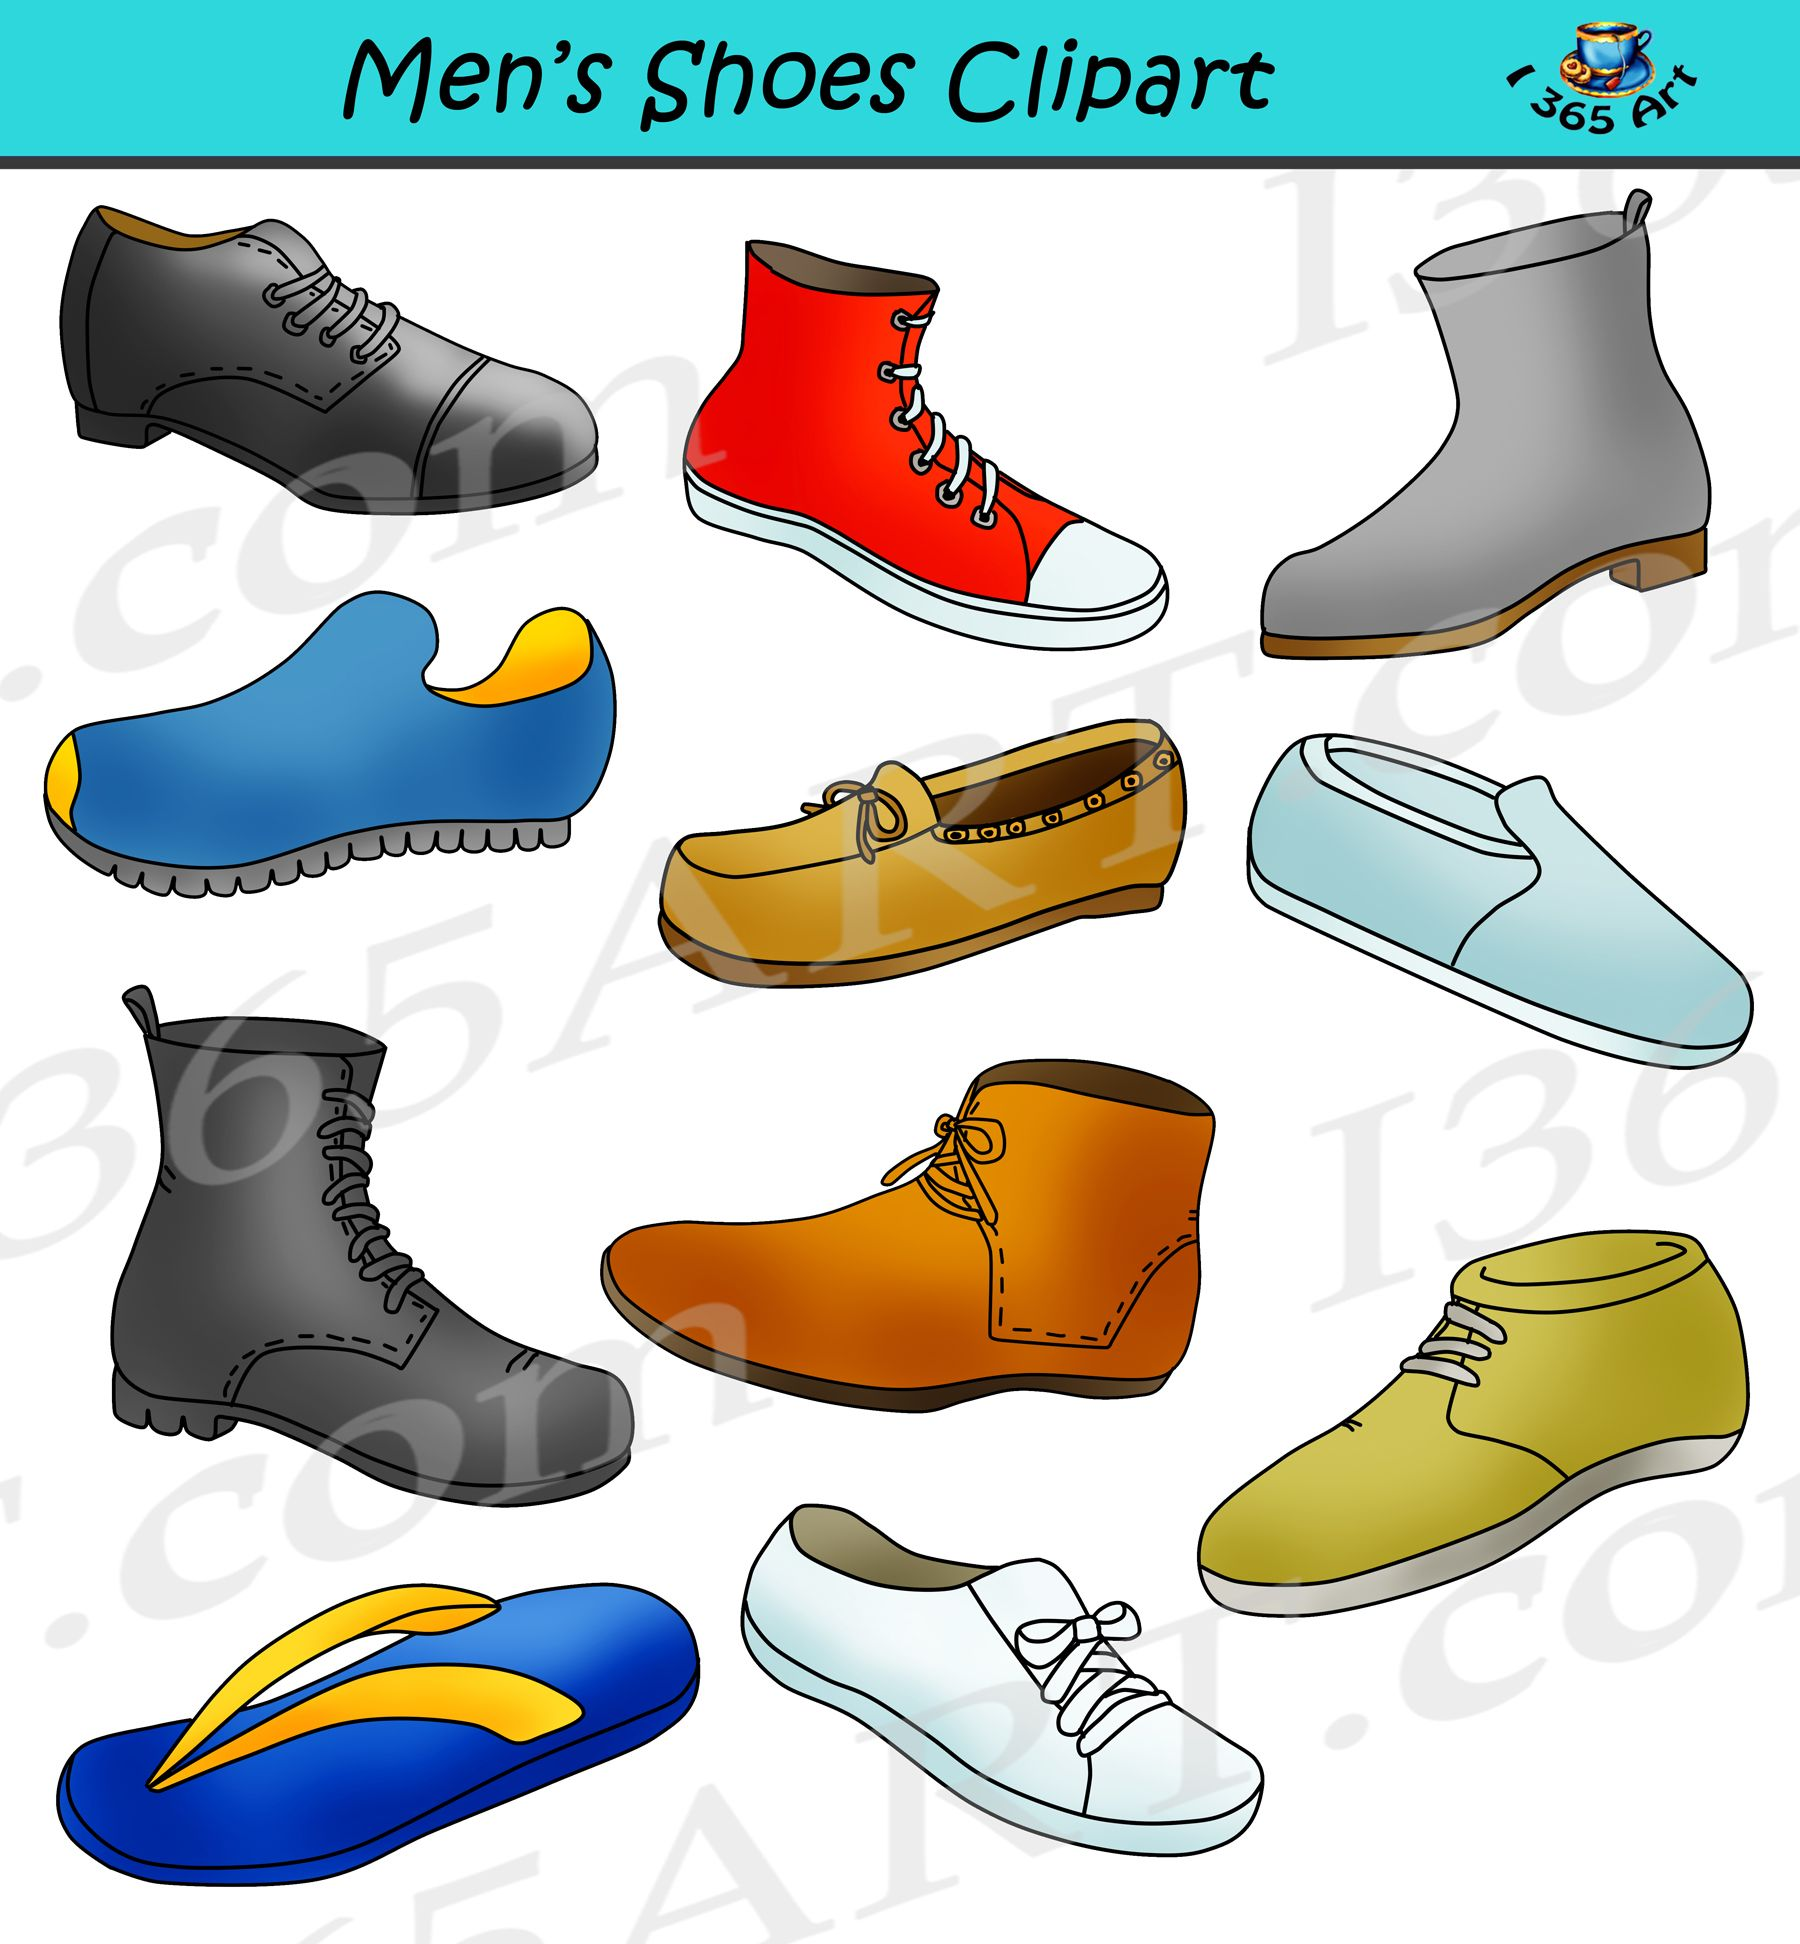 Cartoon Shoes Feet Cartoon Clipart Shoes Clipart Red Png Transparent Clipart Image And Psd File For Free Download Cartoon Shoes Cartoon Clip Art Cartoon Character Design